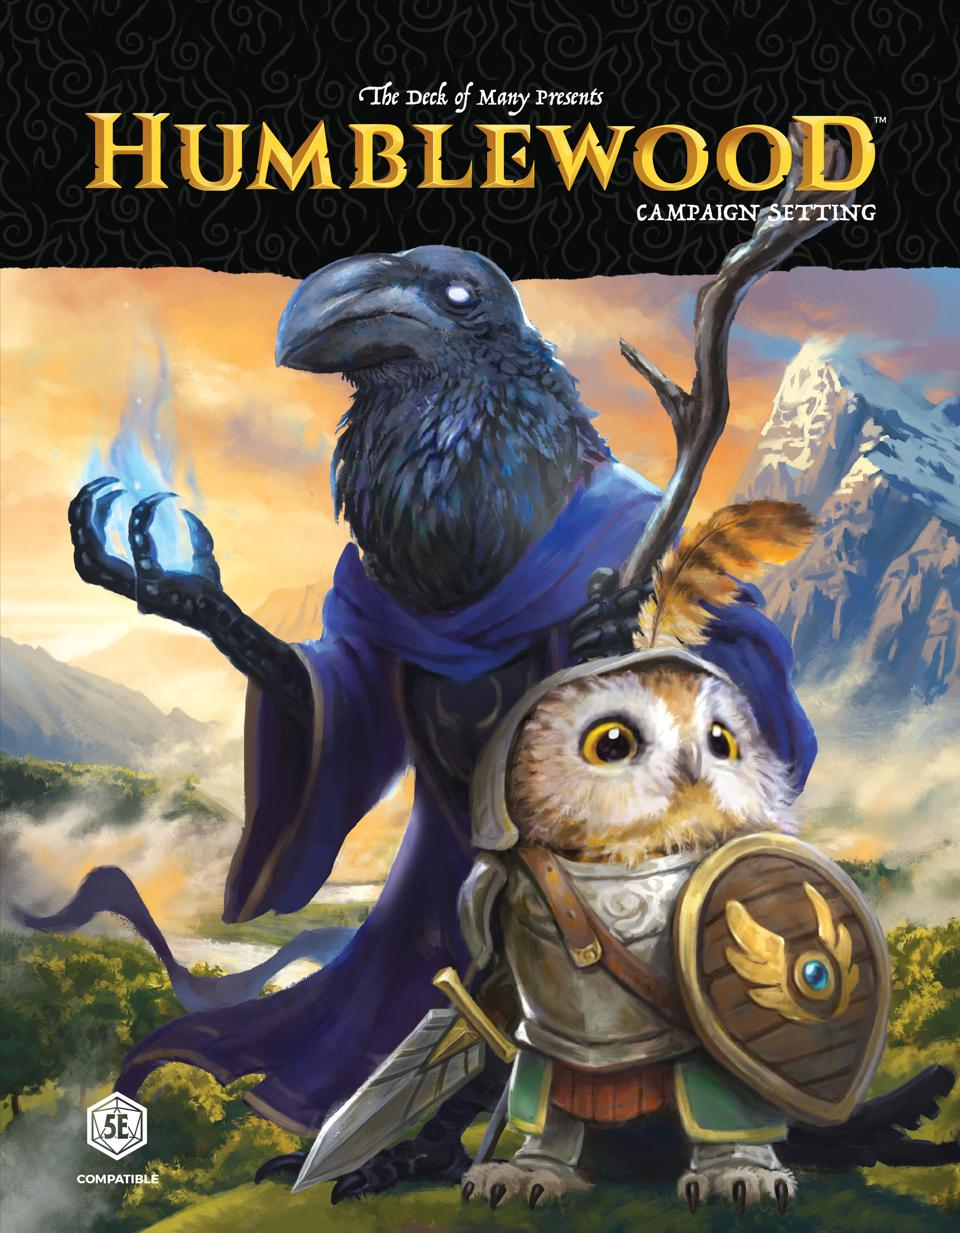 Cover of the Humblewood Campaign setting.